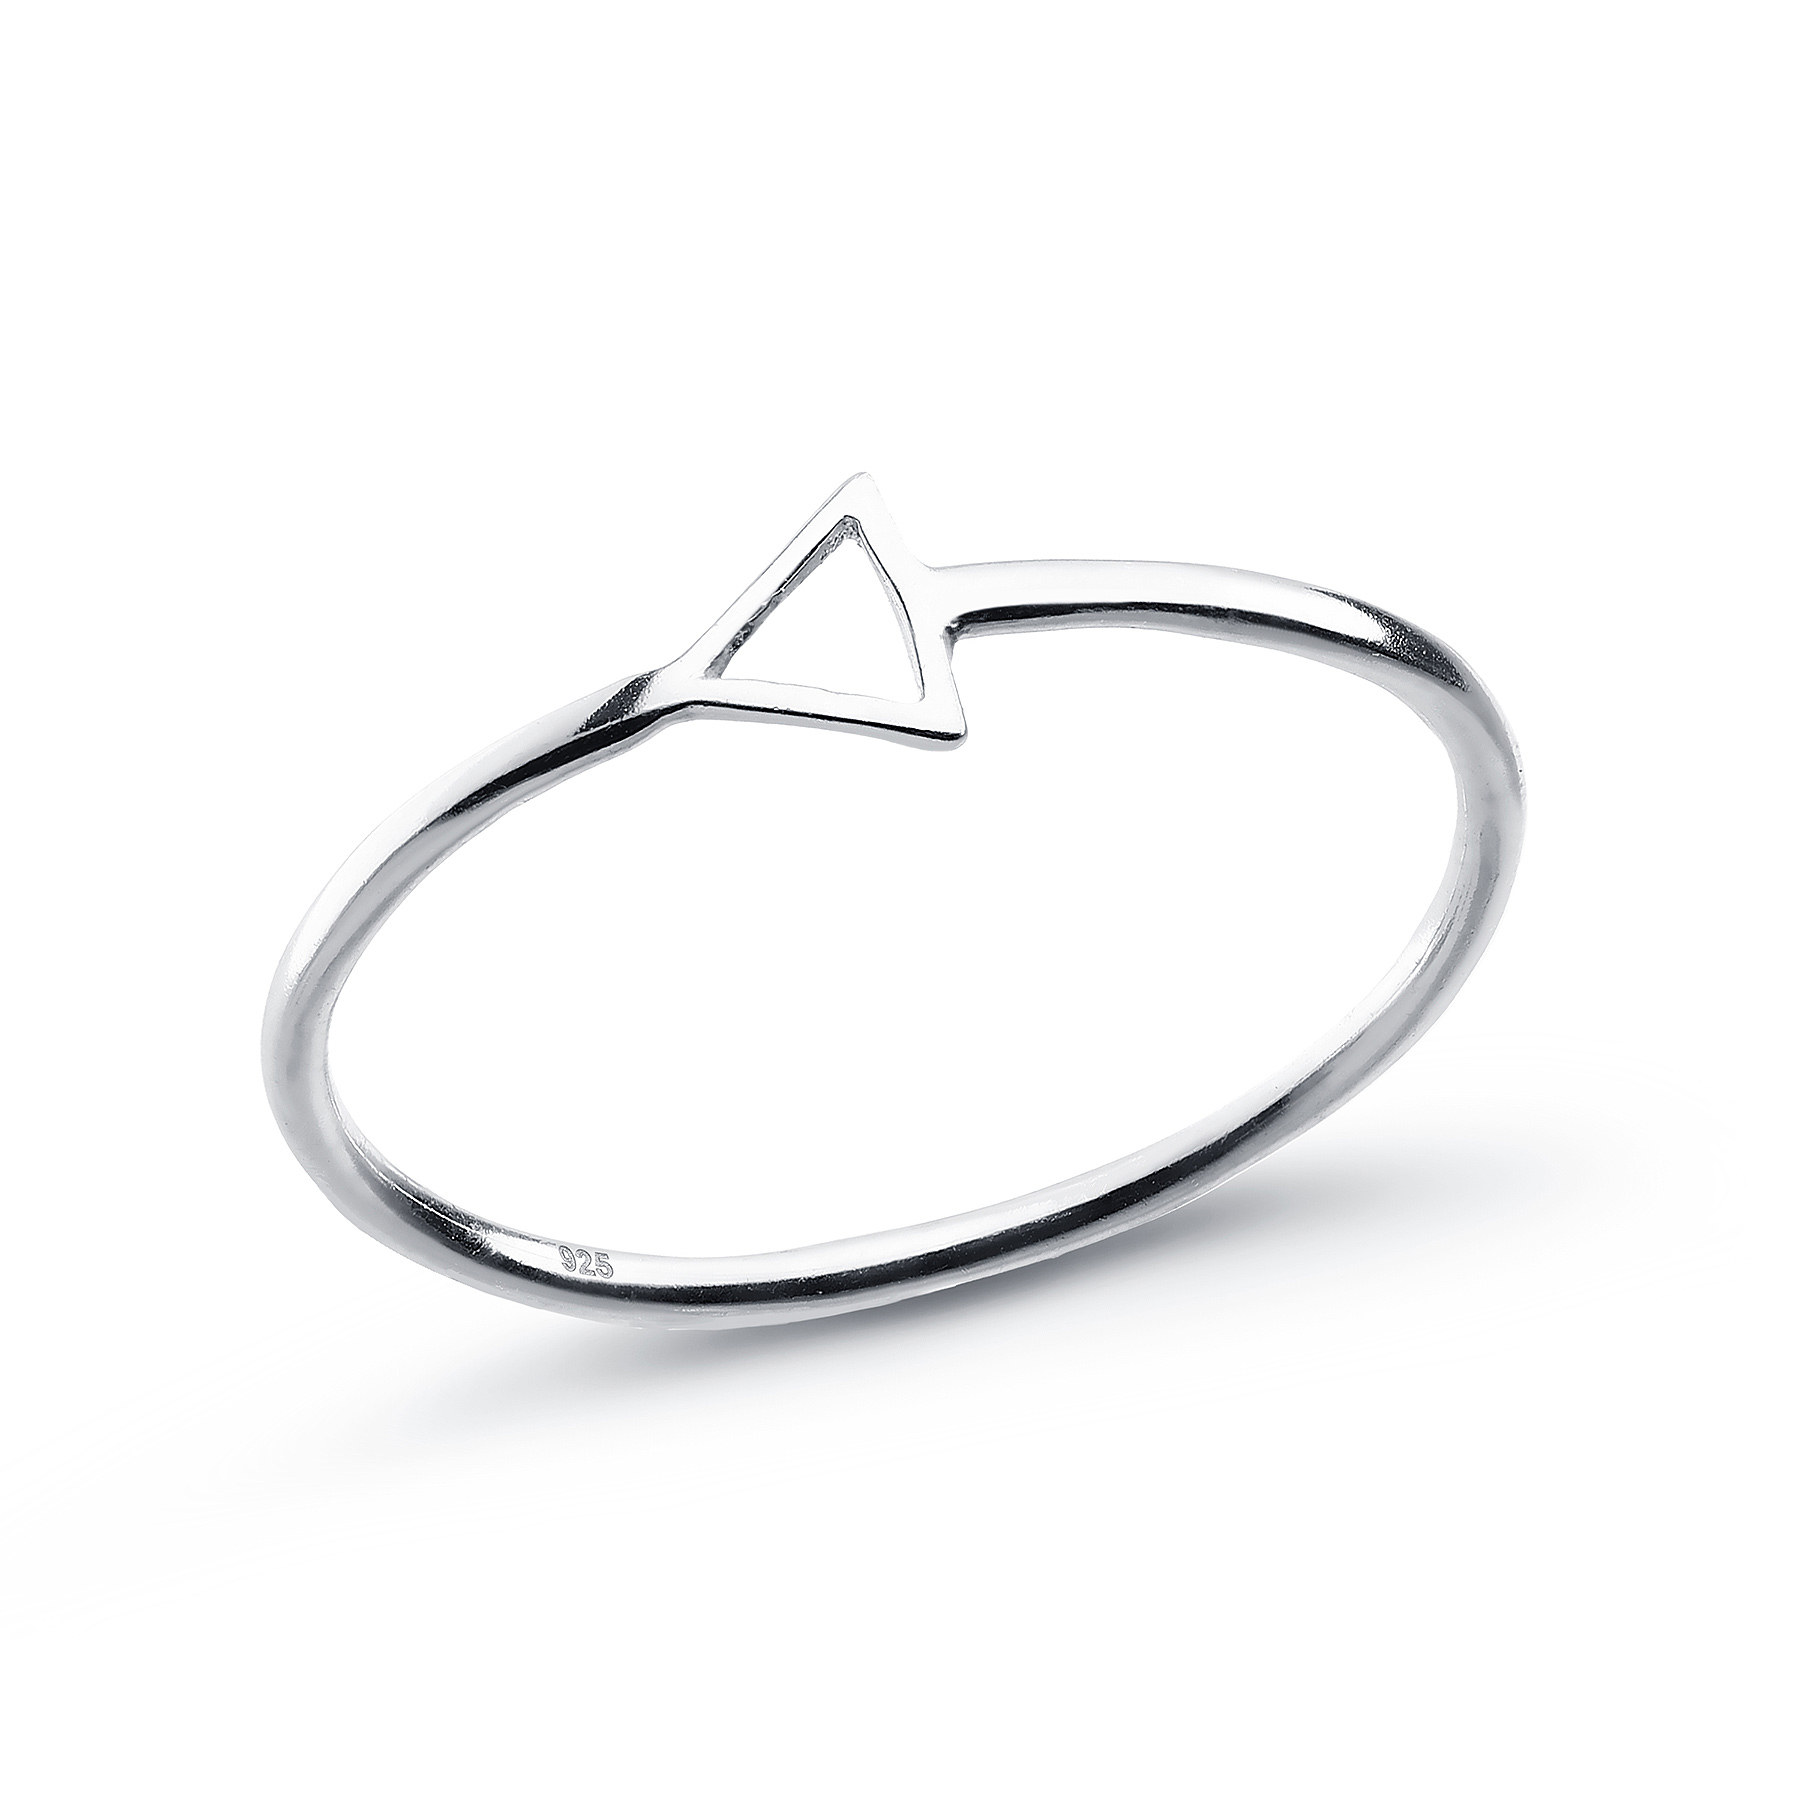 706-21707 - 925 Sterling Silver Triangle Ring